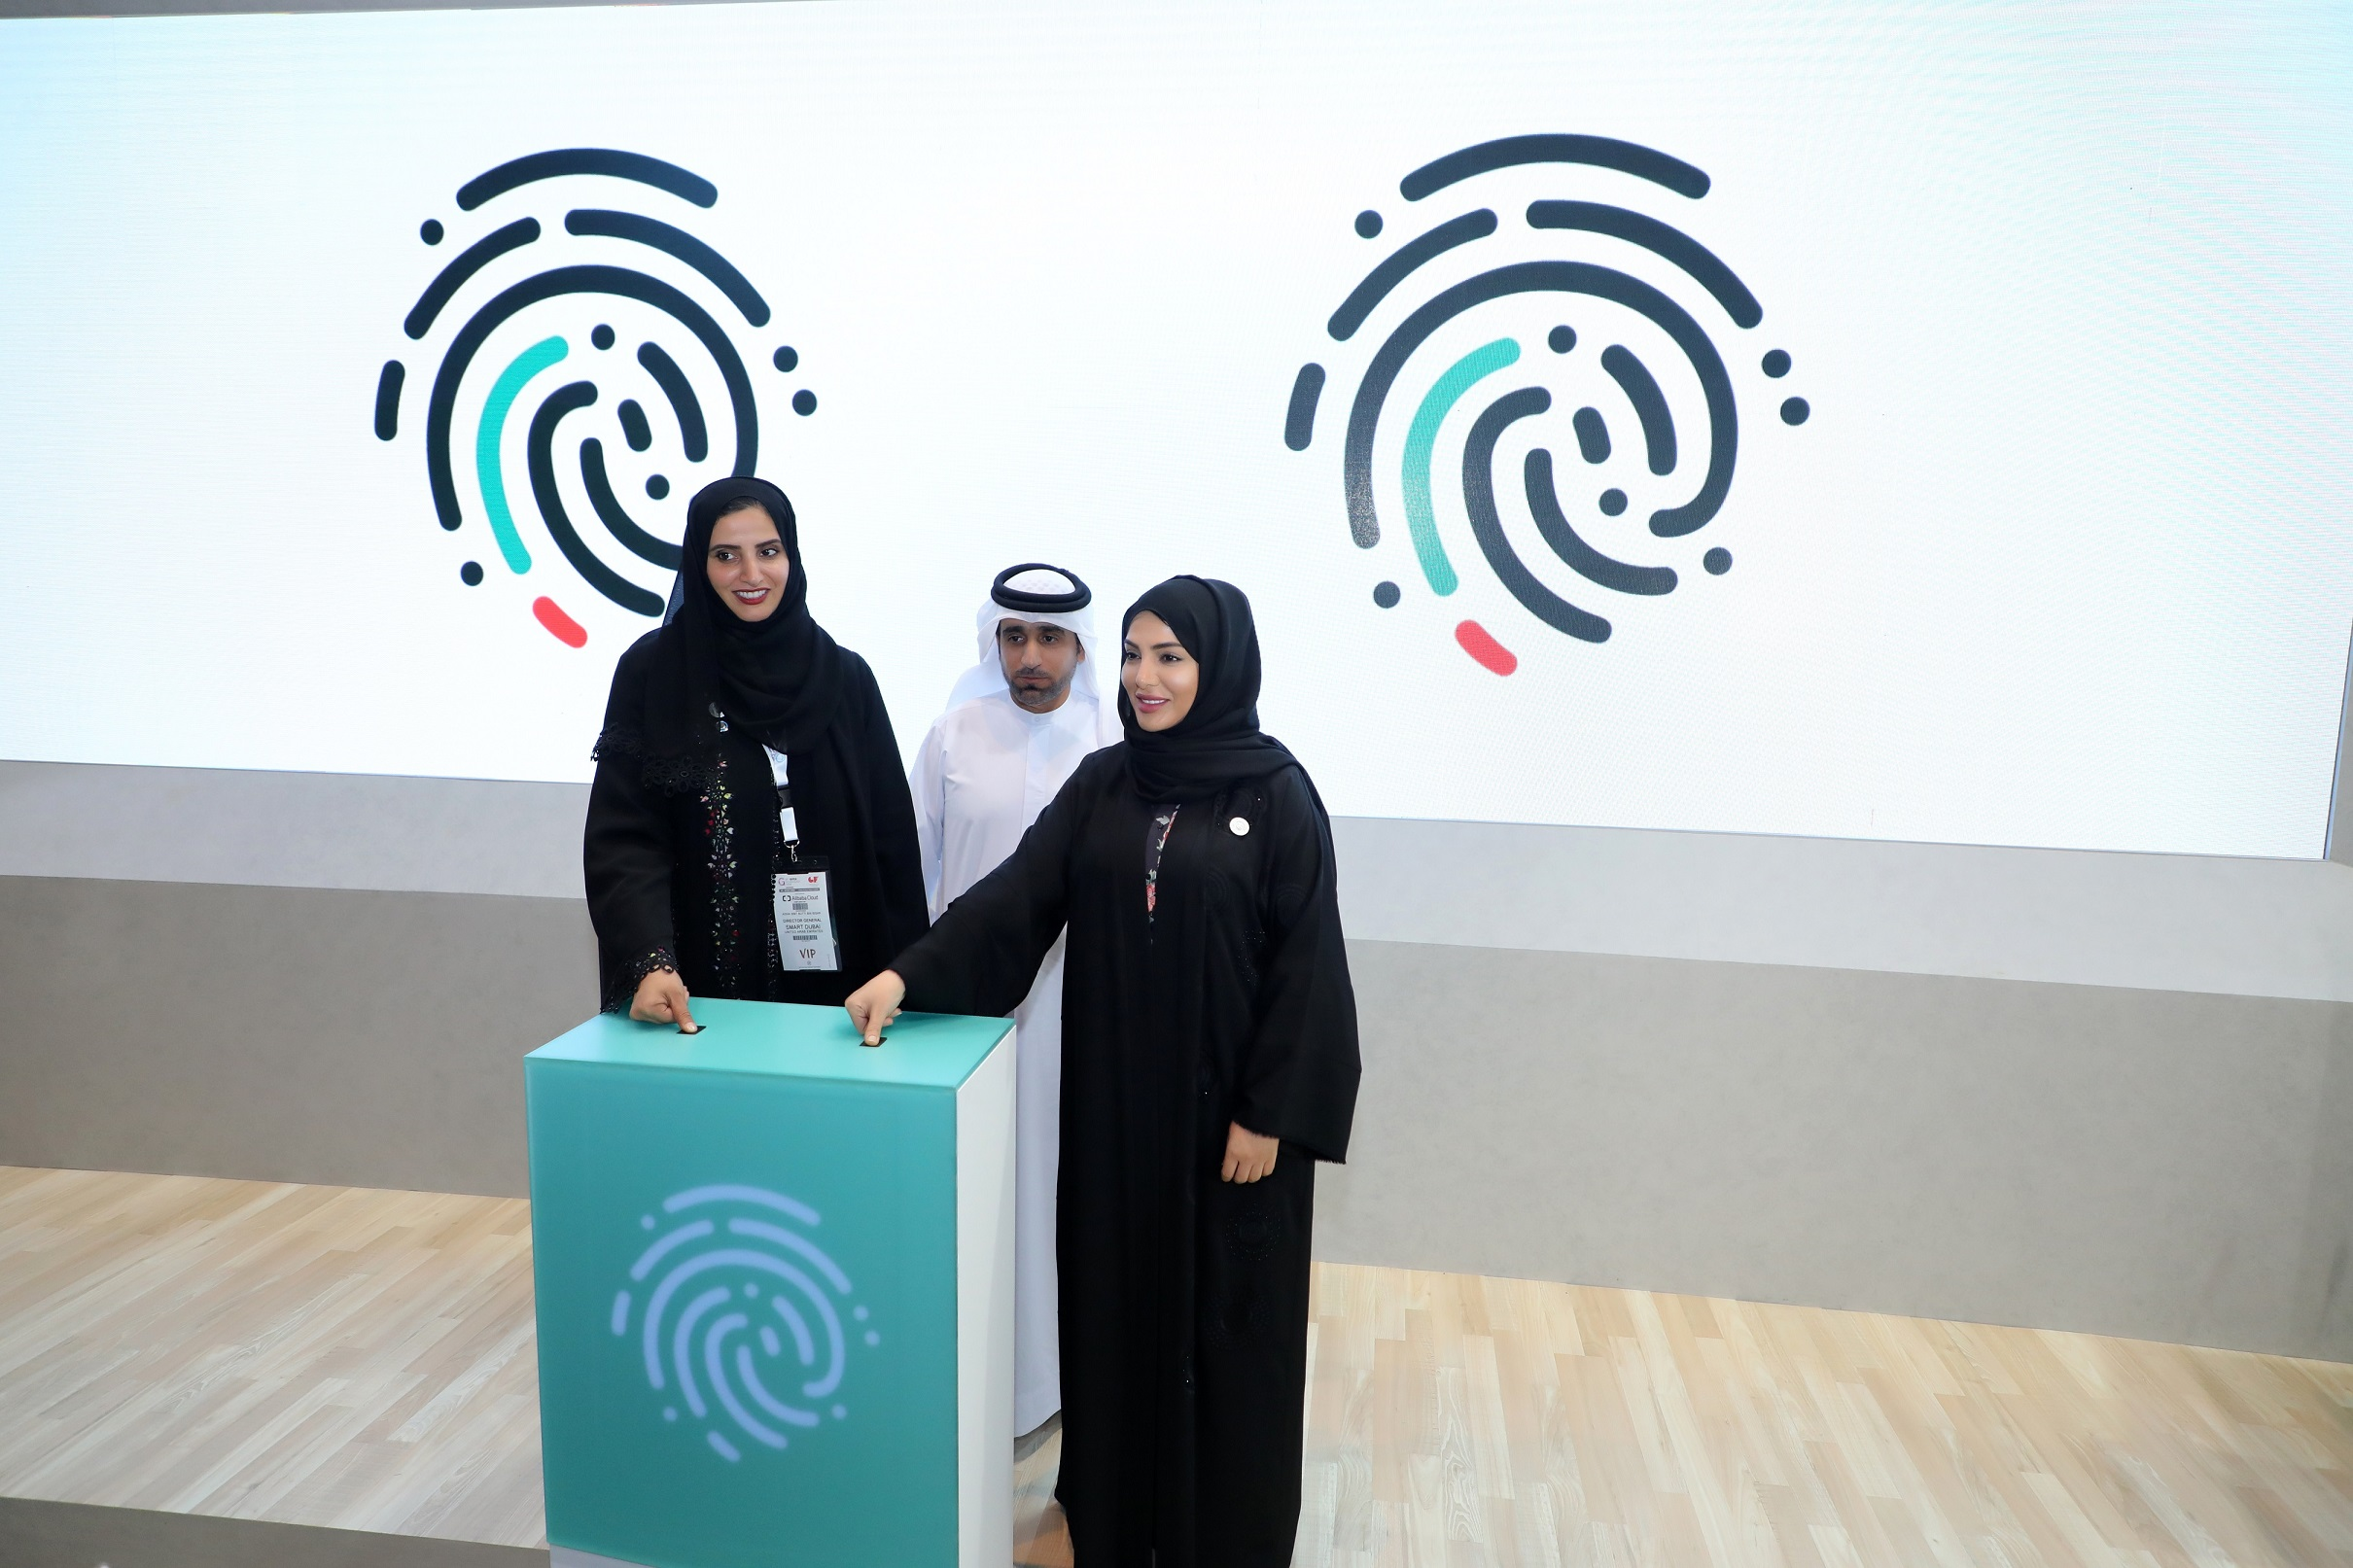 UAEPASS: Smart Dubai and Telecommunication Authority Launch National Digital Identity in Collaboration with Abu Dhabi Smart Solutions and Services Authority